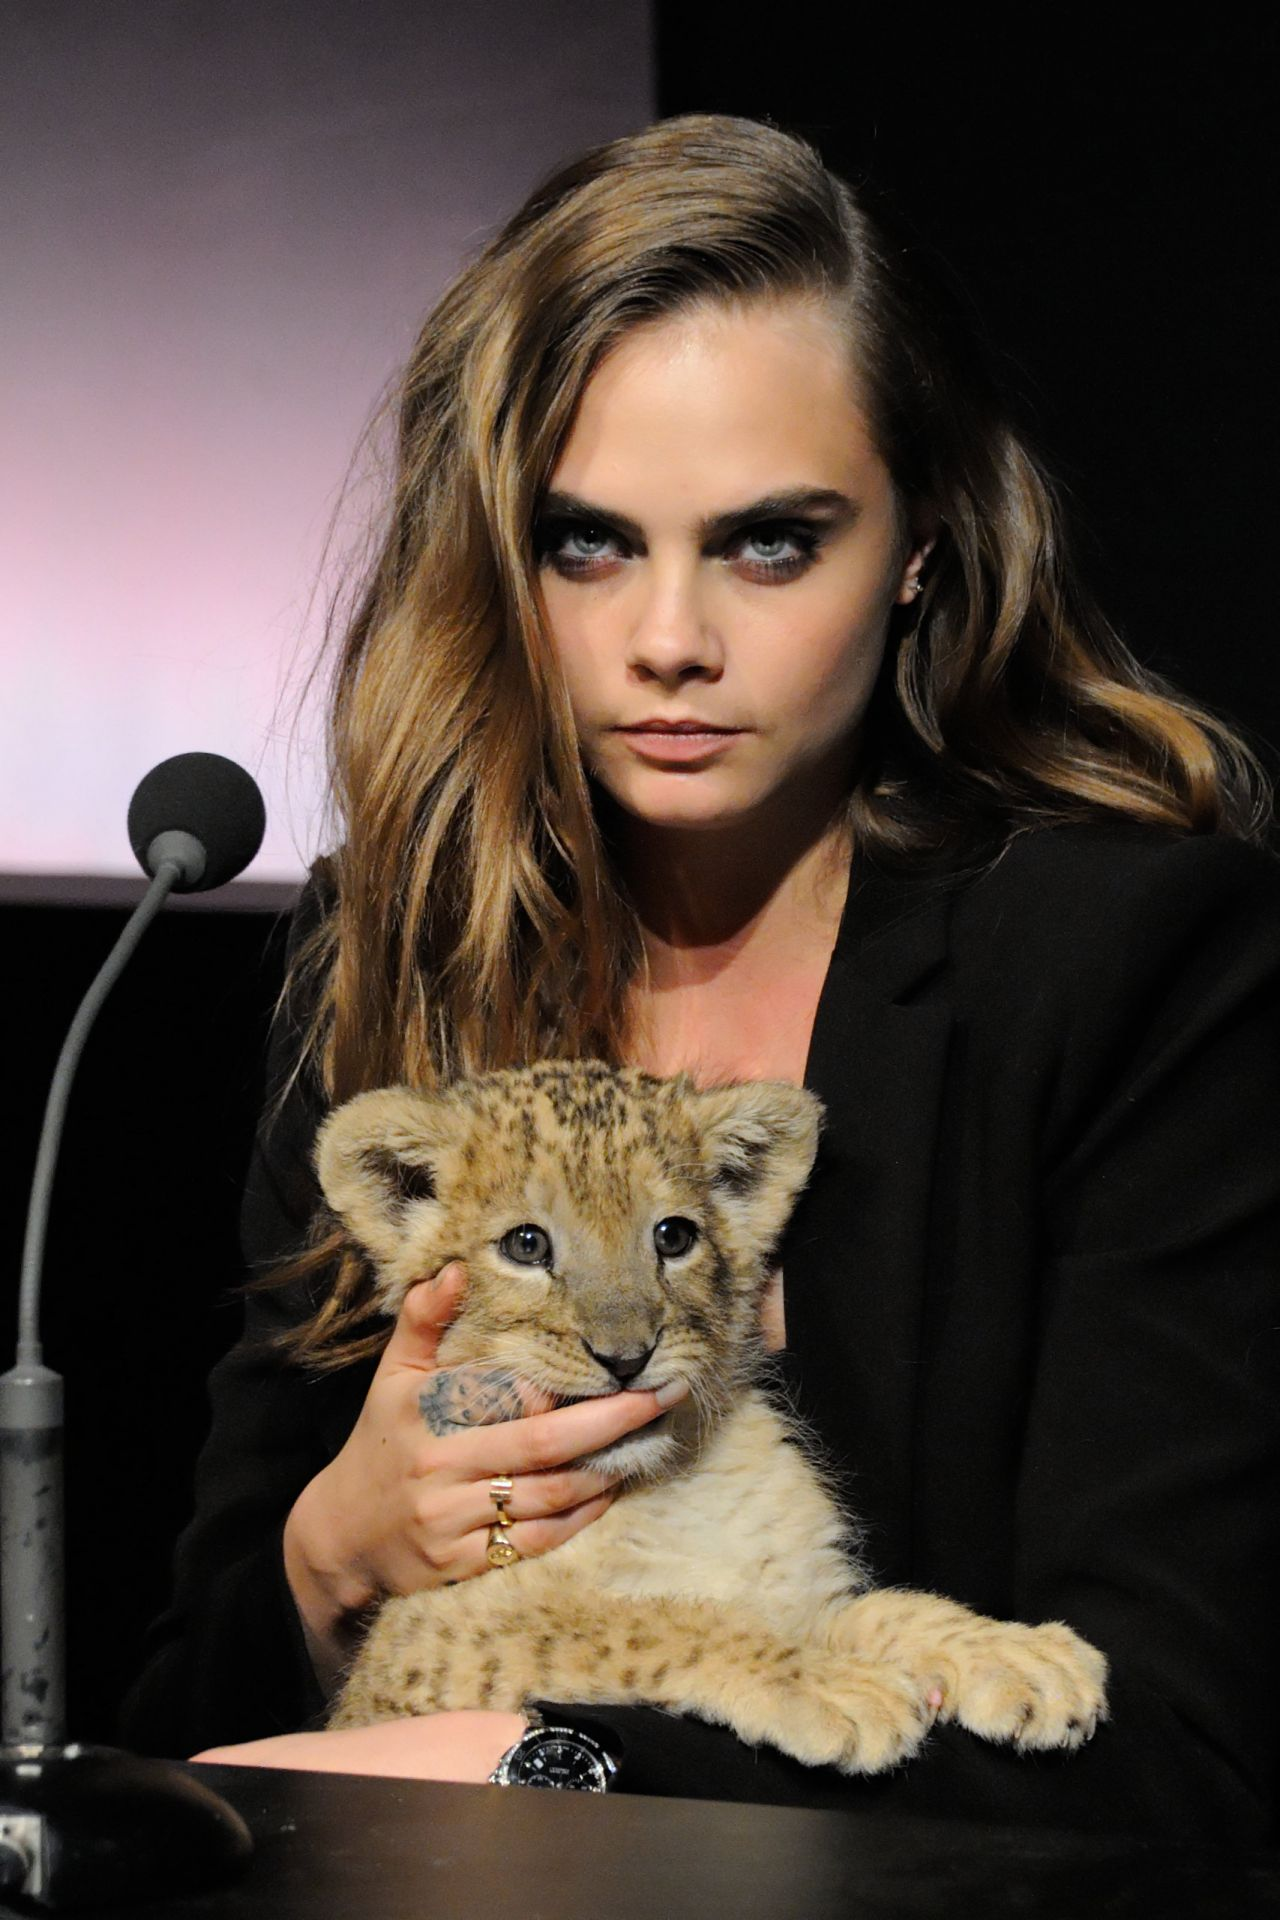 Cara Delevingne - The New Face of Tag Heuer Press Conference in Paris, France